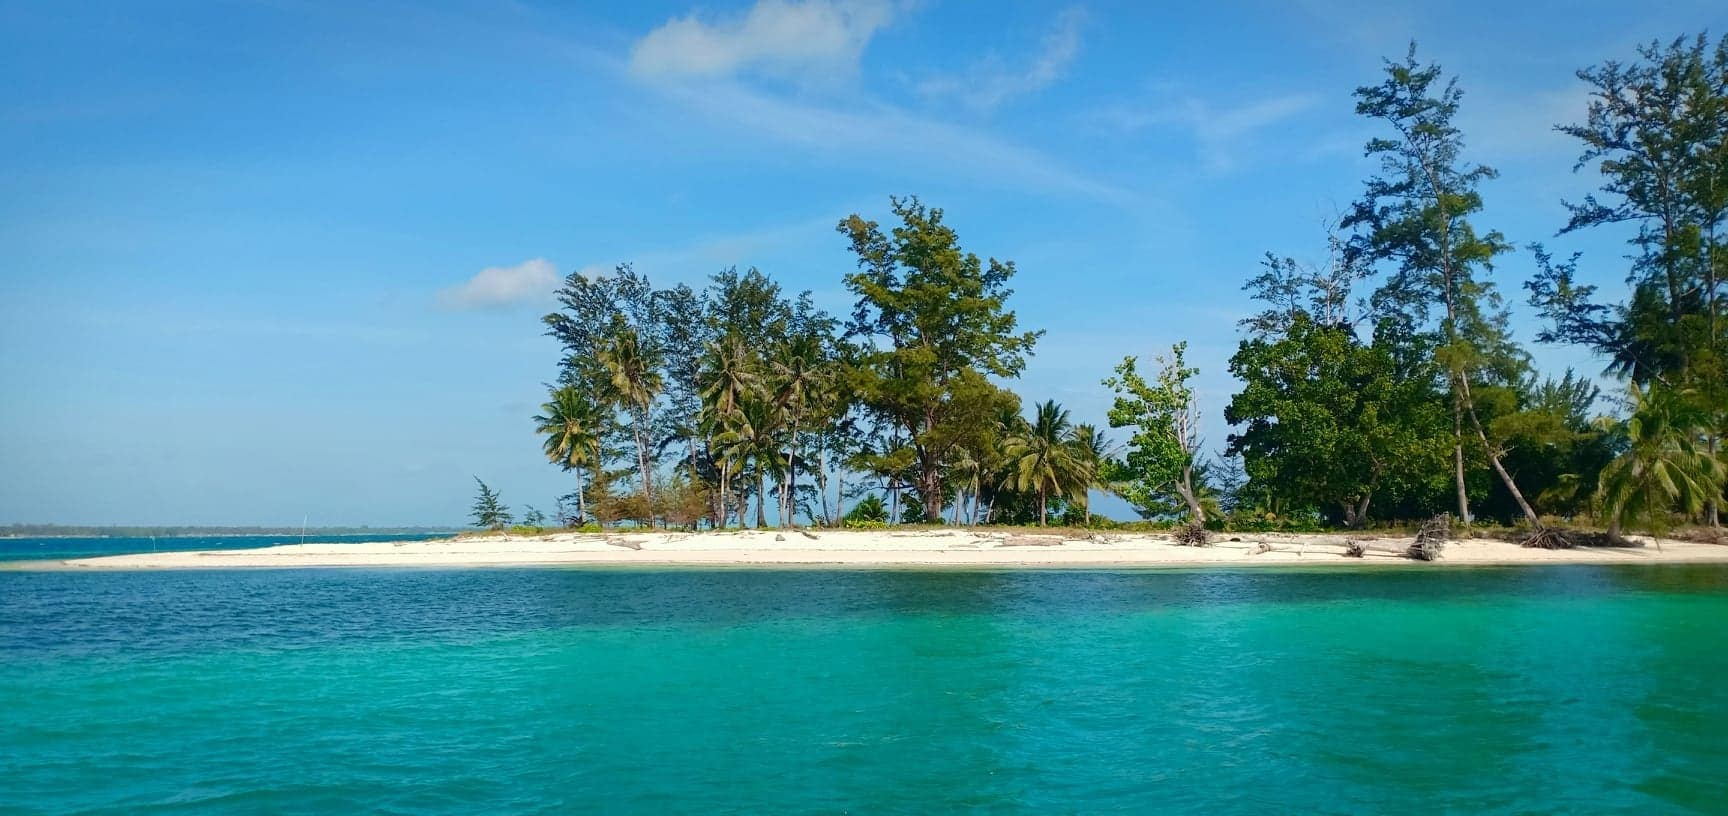 3D2N Balabac Tour Package by Natural Arts Travel and Tours